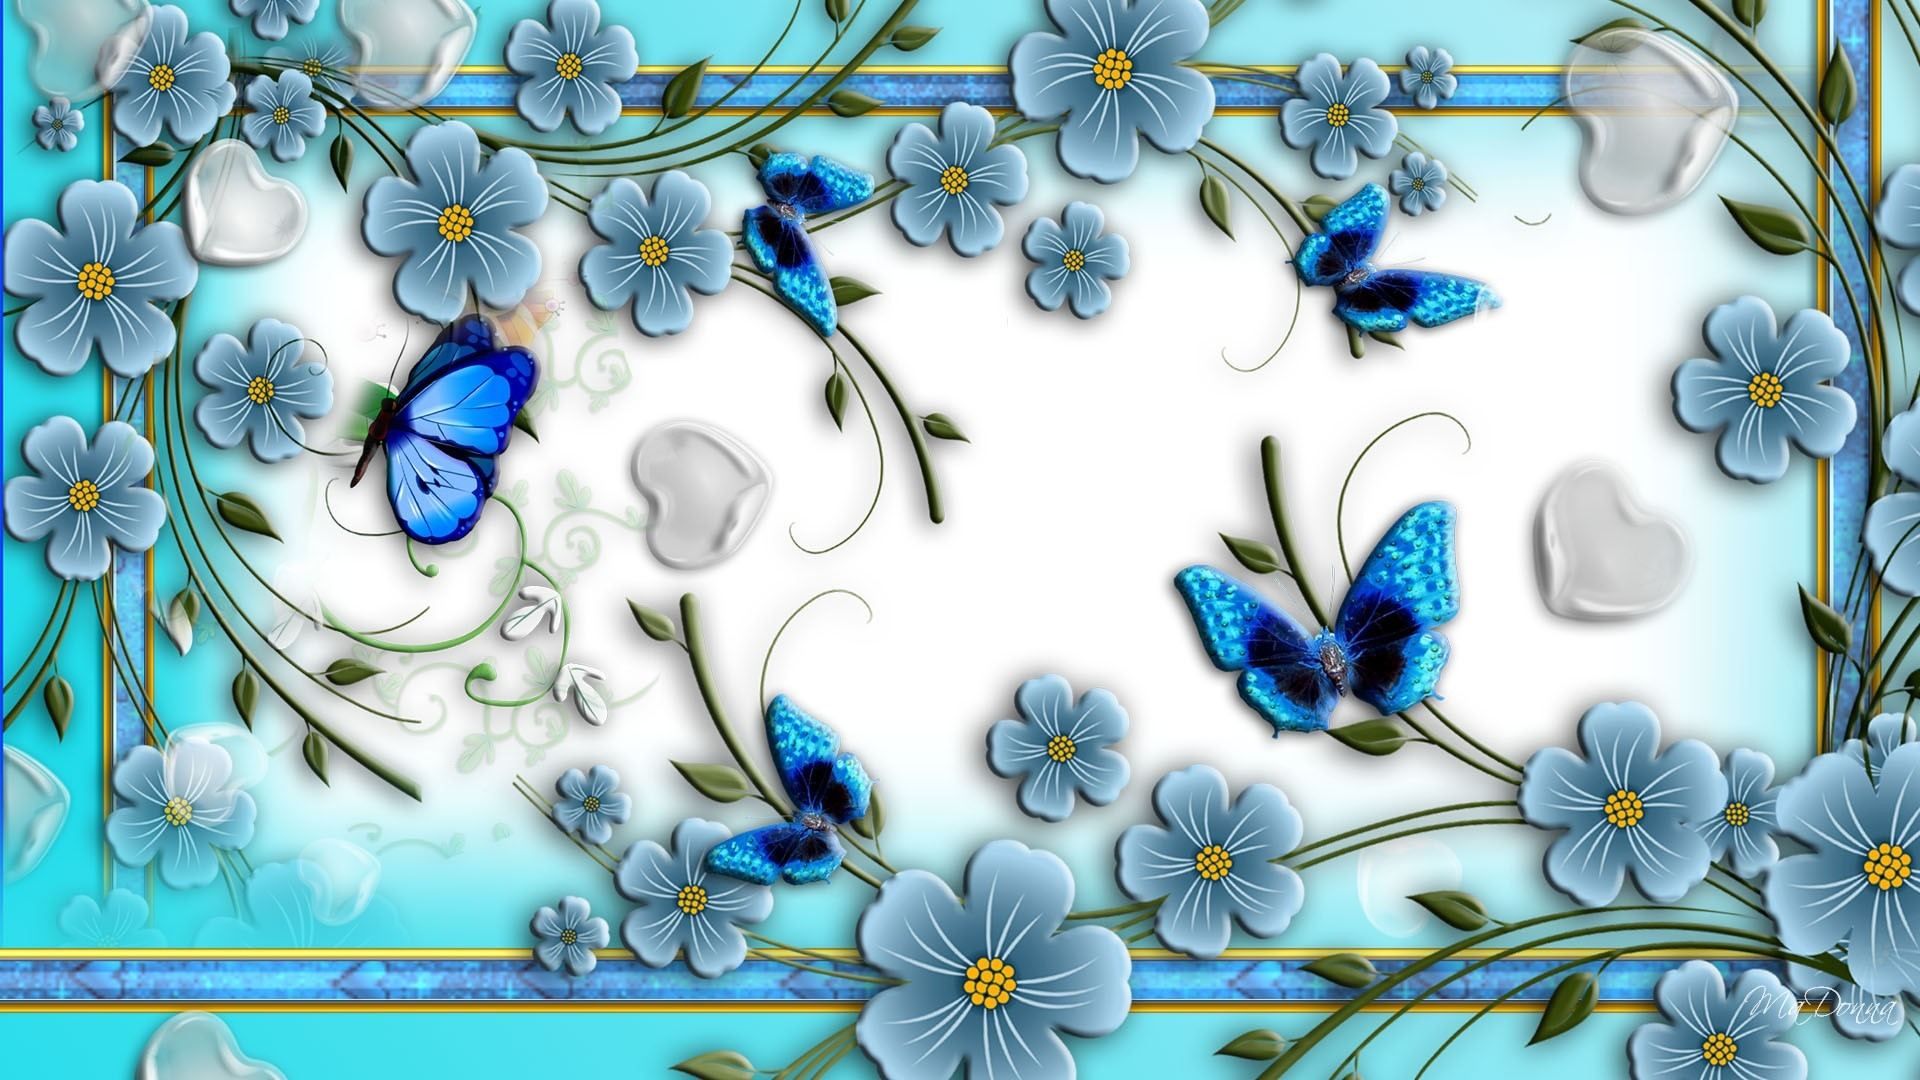 Res: 1920x1080, Blue Flowers Hd Wallpapers 45 Background